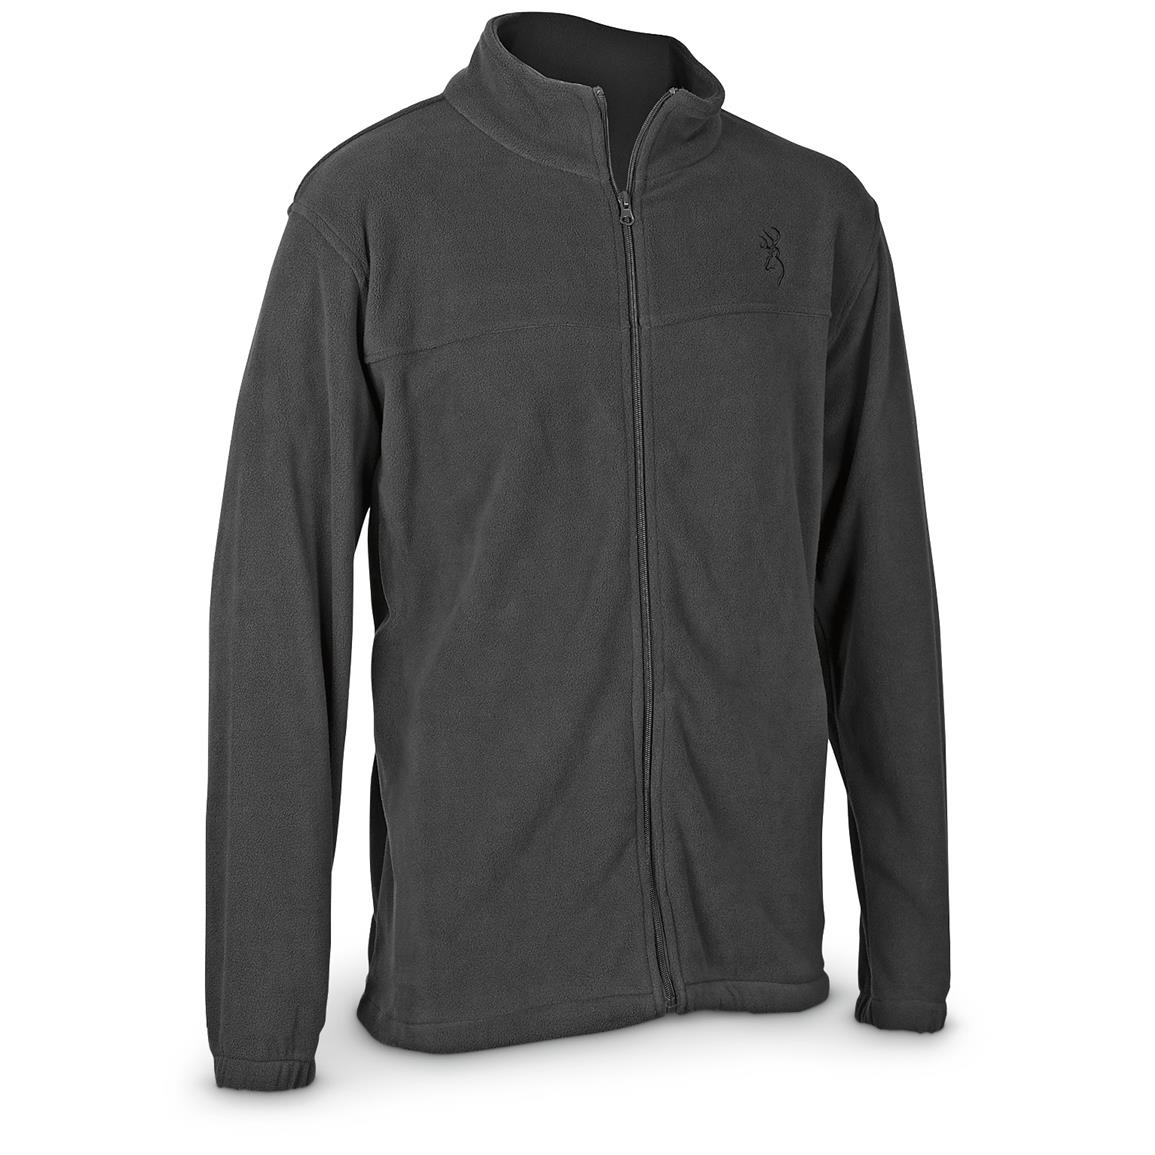 Browning Men's Fleece Full Zip Jacket, Charcoal